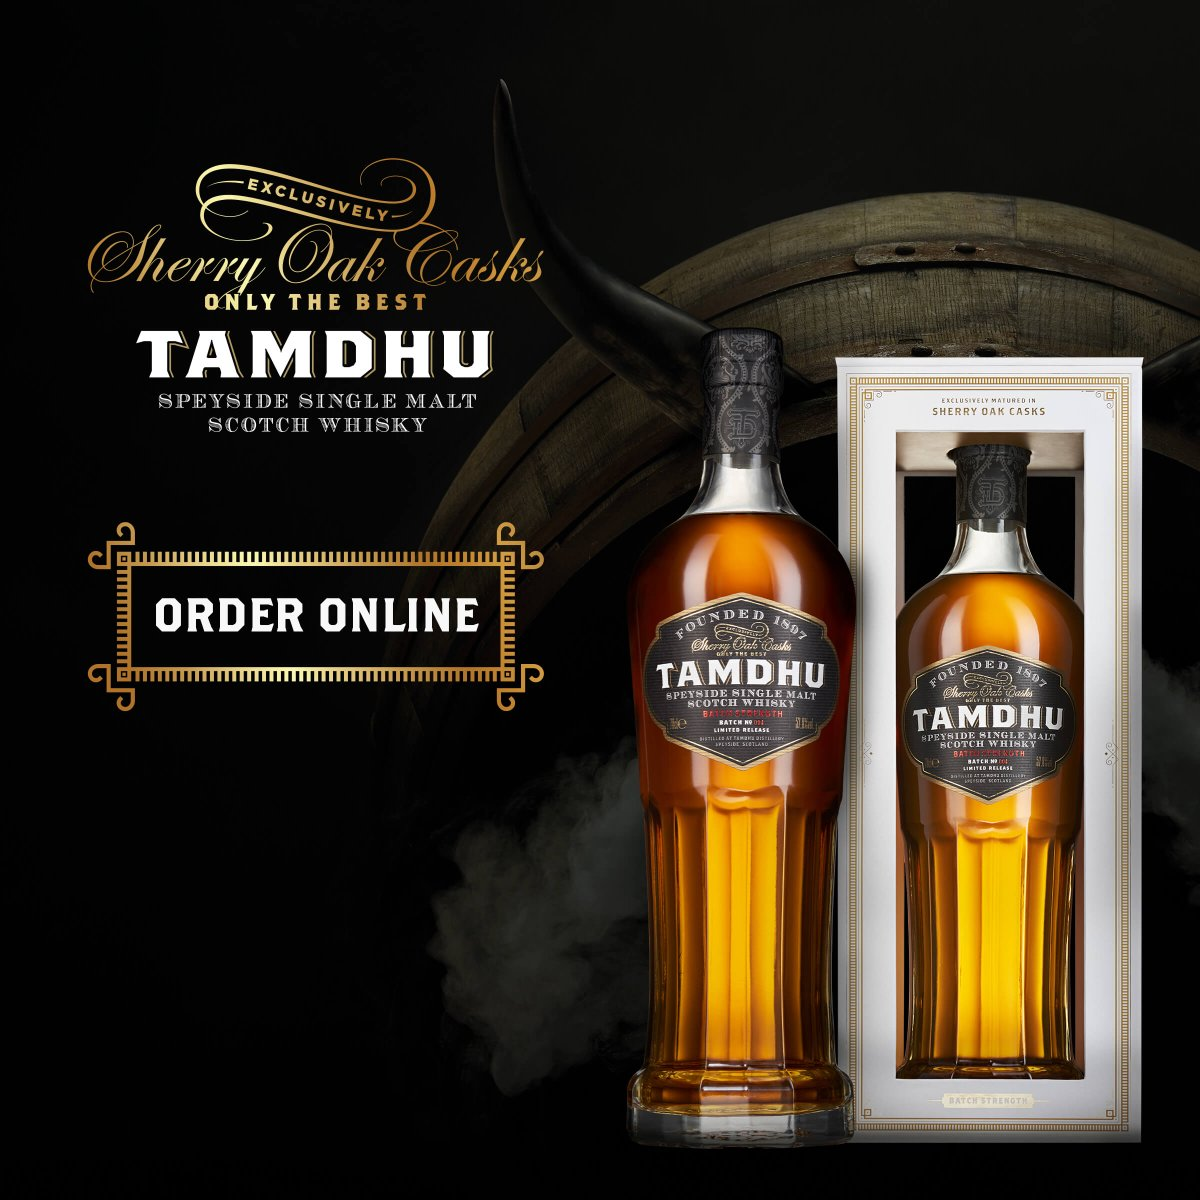 We're down to the final remaining bottles of our award-winning Tamdhu Batch Strength No 004. Order directly for free delivery.  https://t.co/dI8Y5AX8IQ https://t.co/WhJqG2FXW7